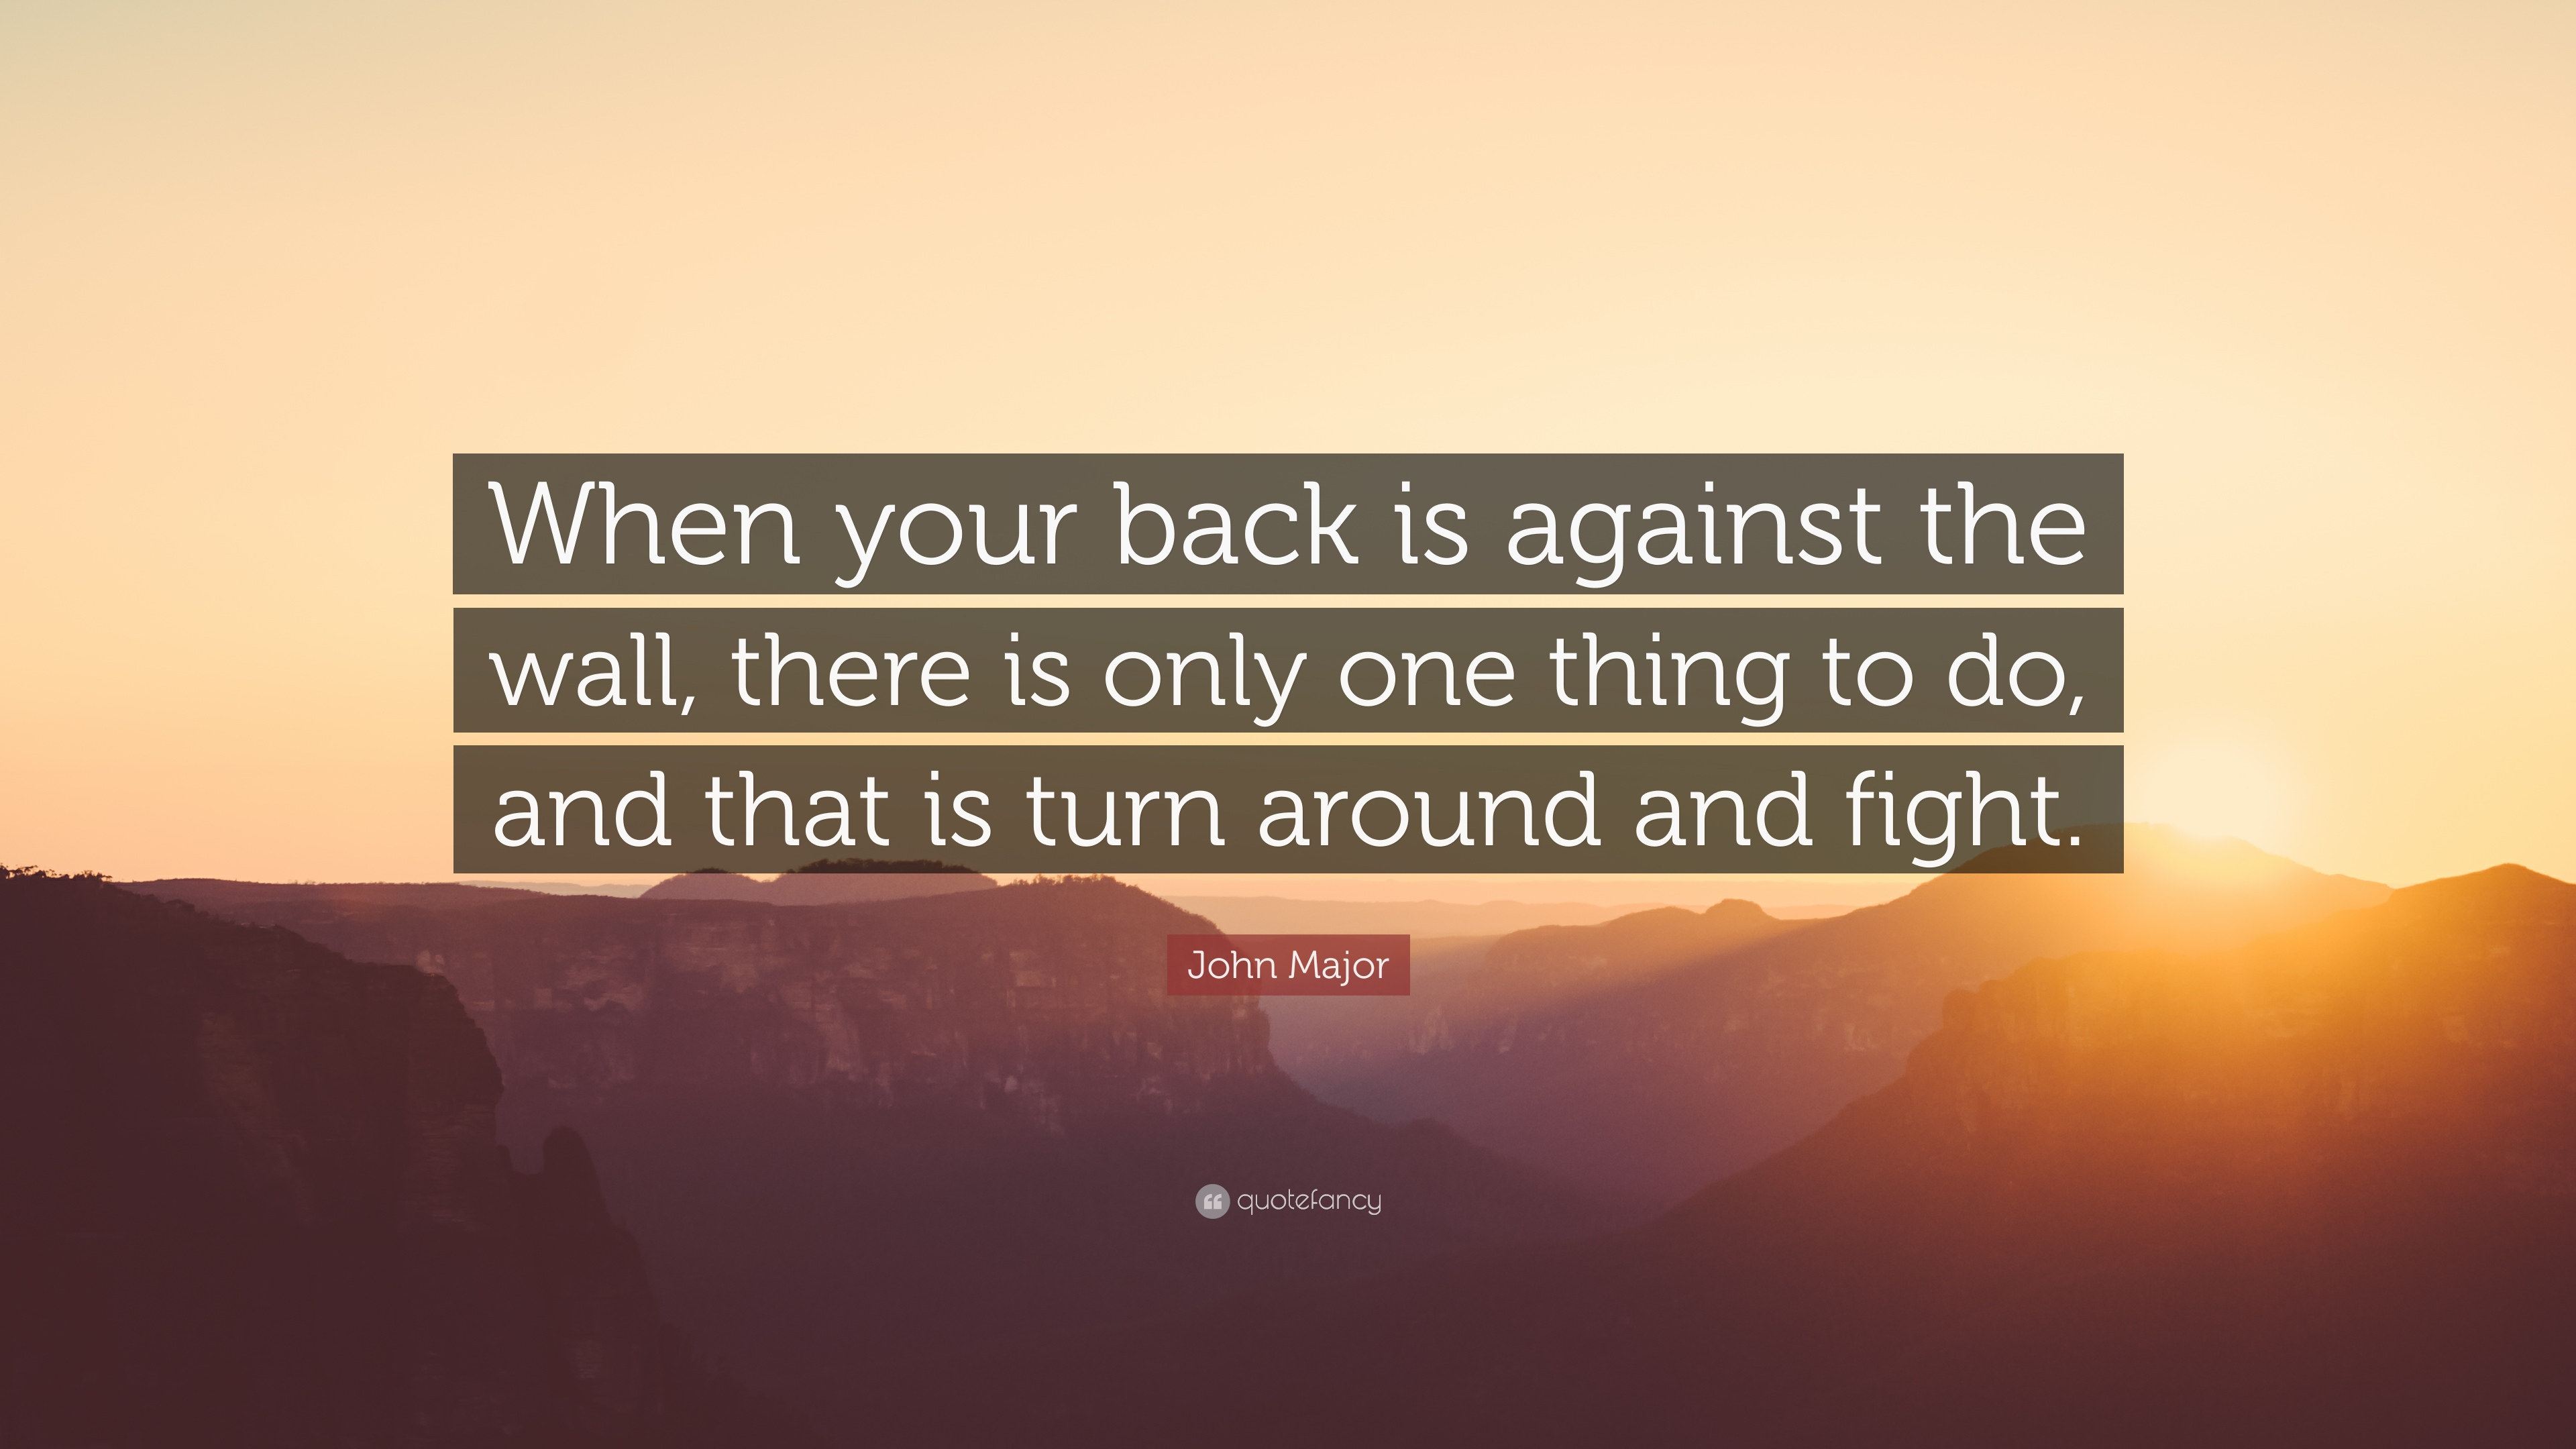 John Major Quote When Your Back Is Against The Wall There Is Only